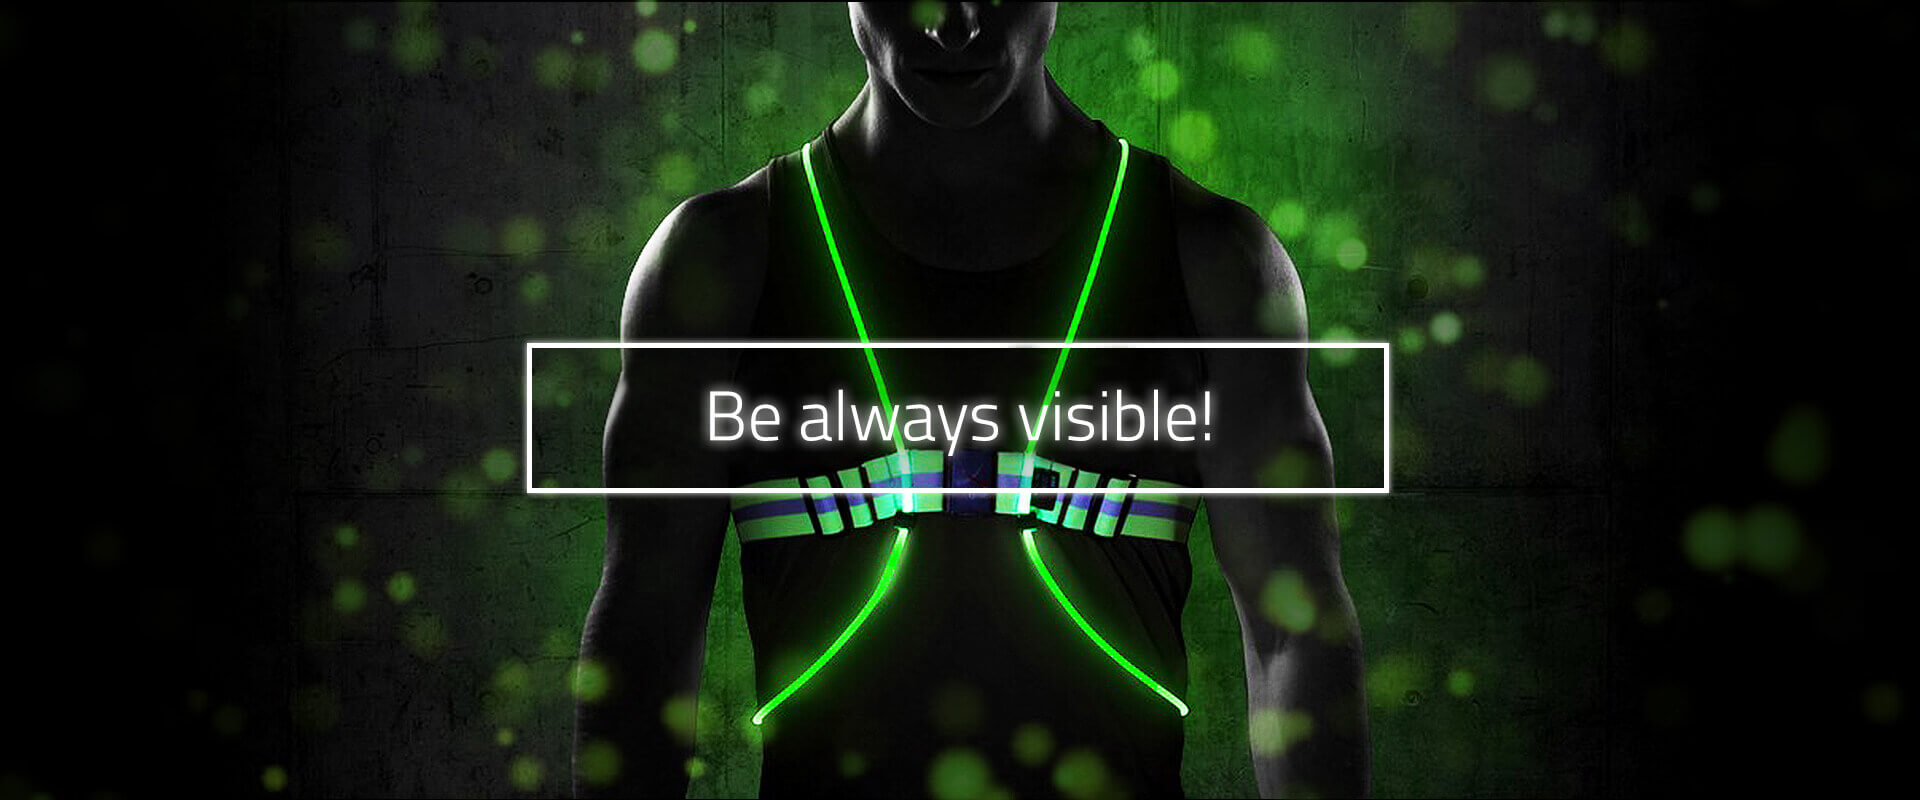 Be always visible